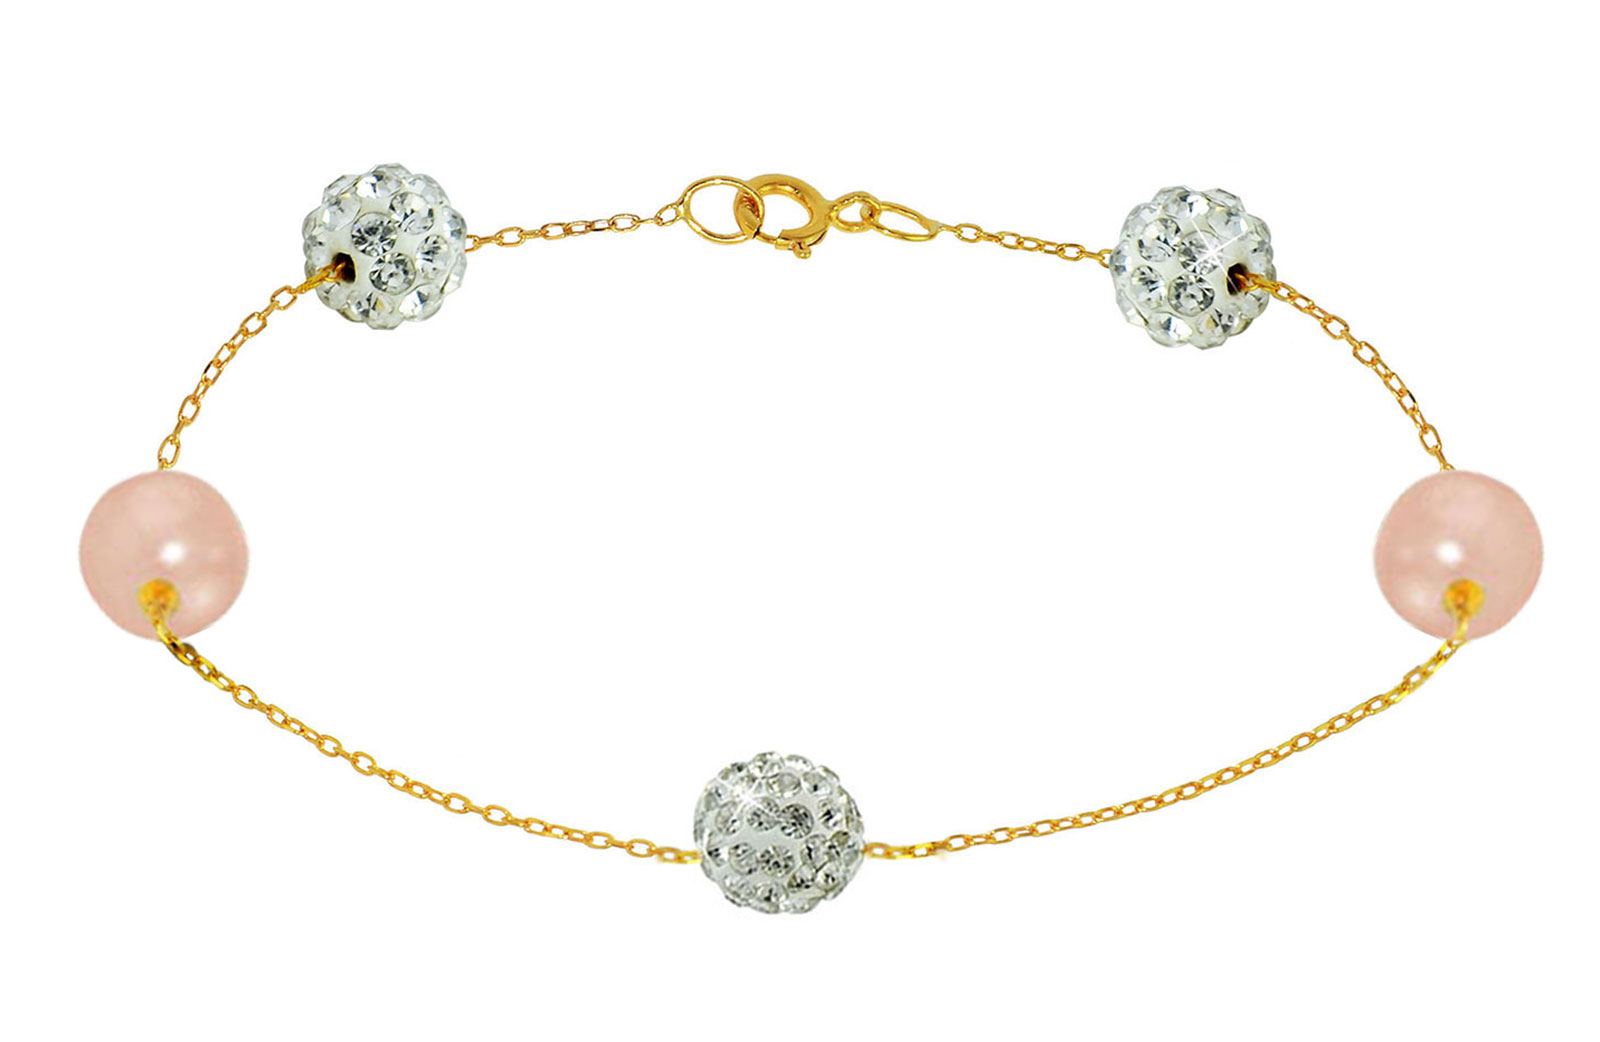 Vera Perla 18K Solid Gold Gradual Built-in 5-6mm Crystal Ball and Pink Pearls Bracelet